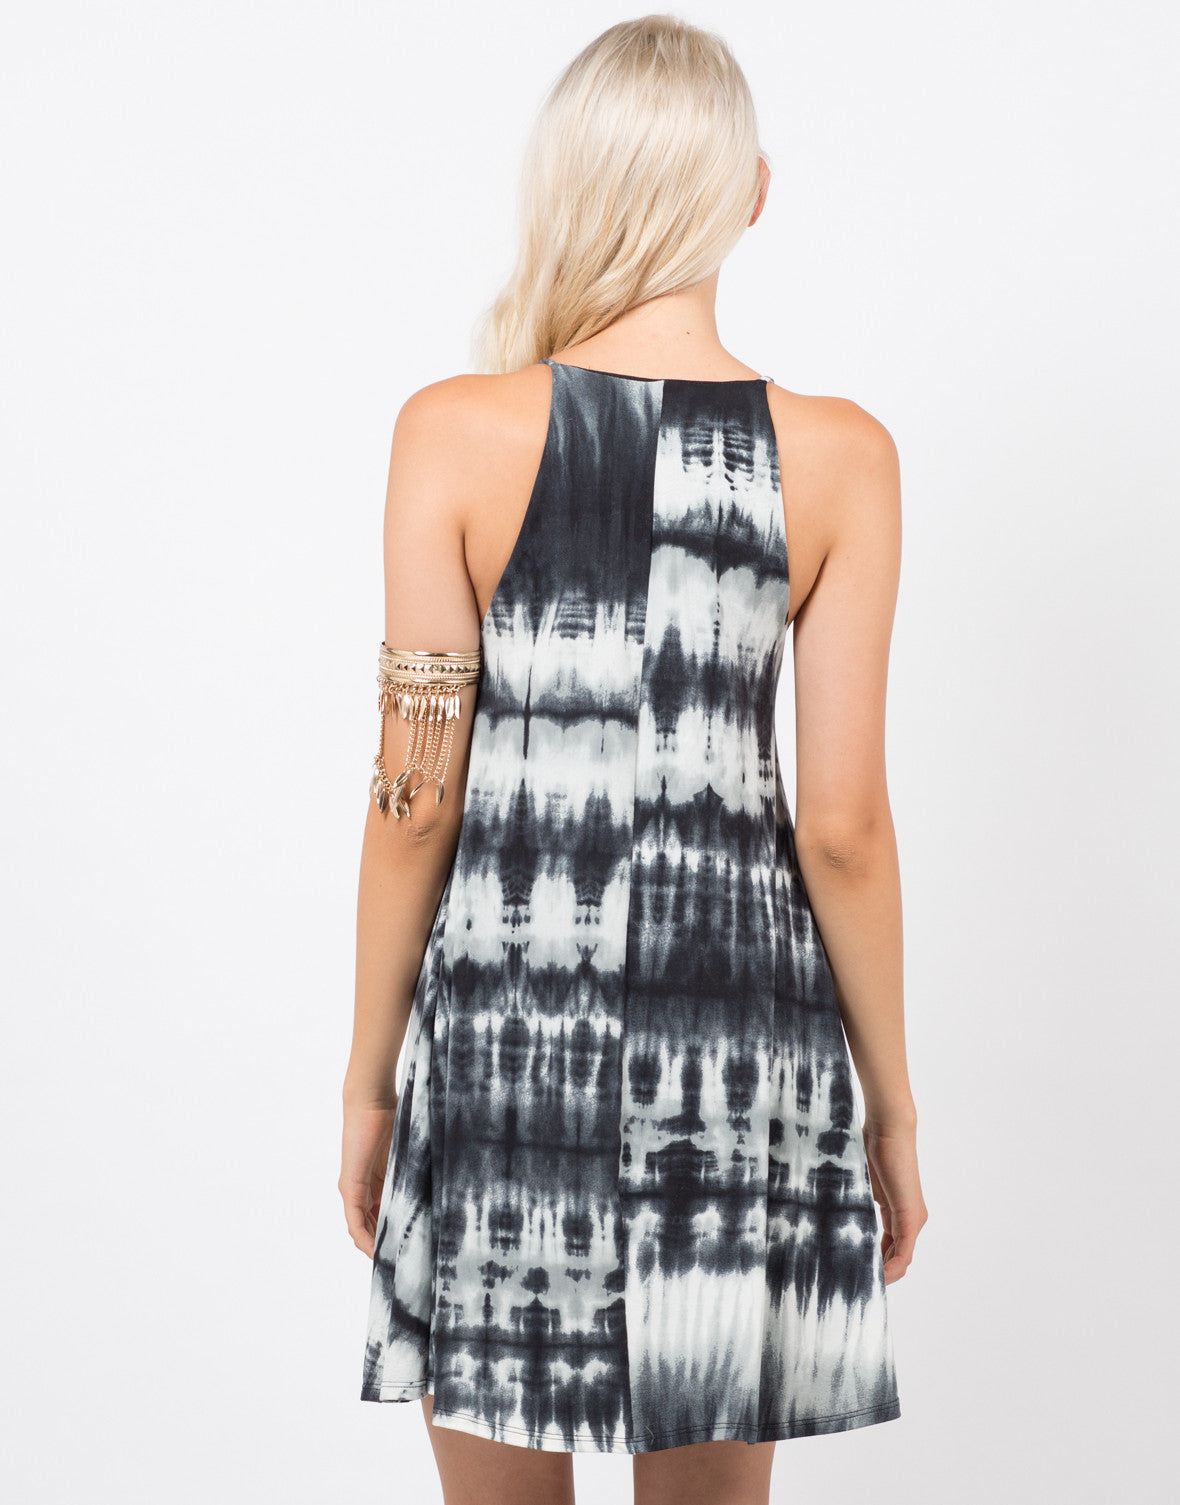 Back View of Cloudy Dyed Dress